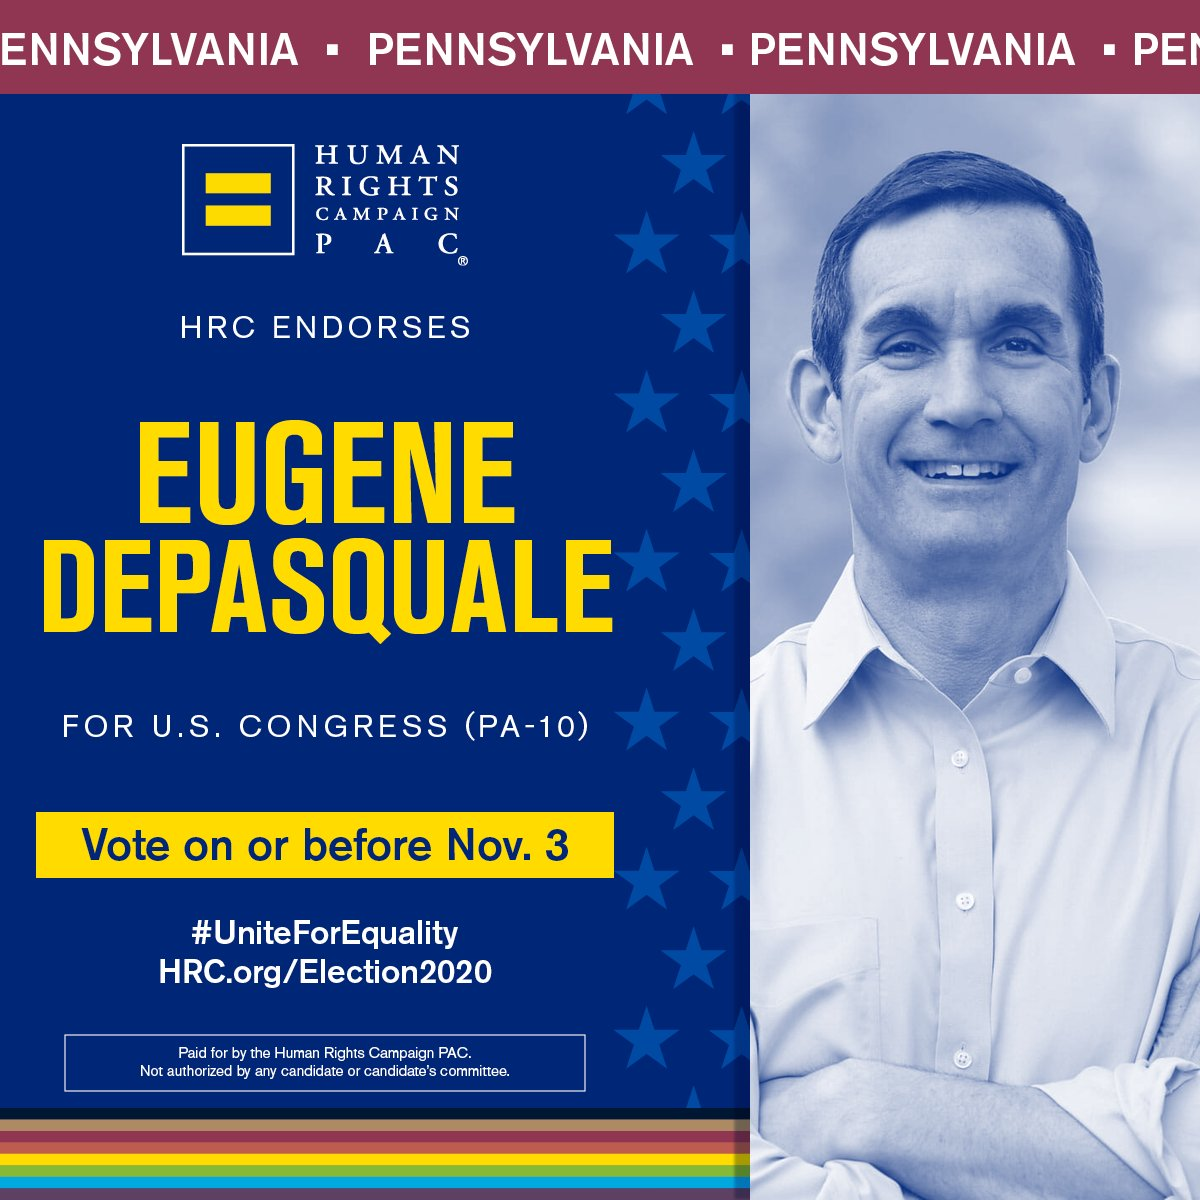 Throughout my career I've used my platform to speak up for and defend the rights of LGBTQ PA'ians. No one should be discriminated against because of who they are or who they love. I will continue to fight for full equality and I'm proud to have @HRC's support in this race. #PA10